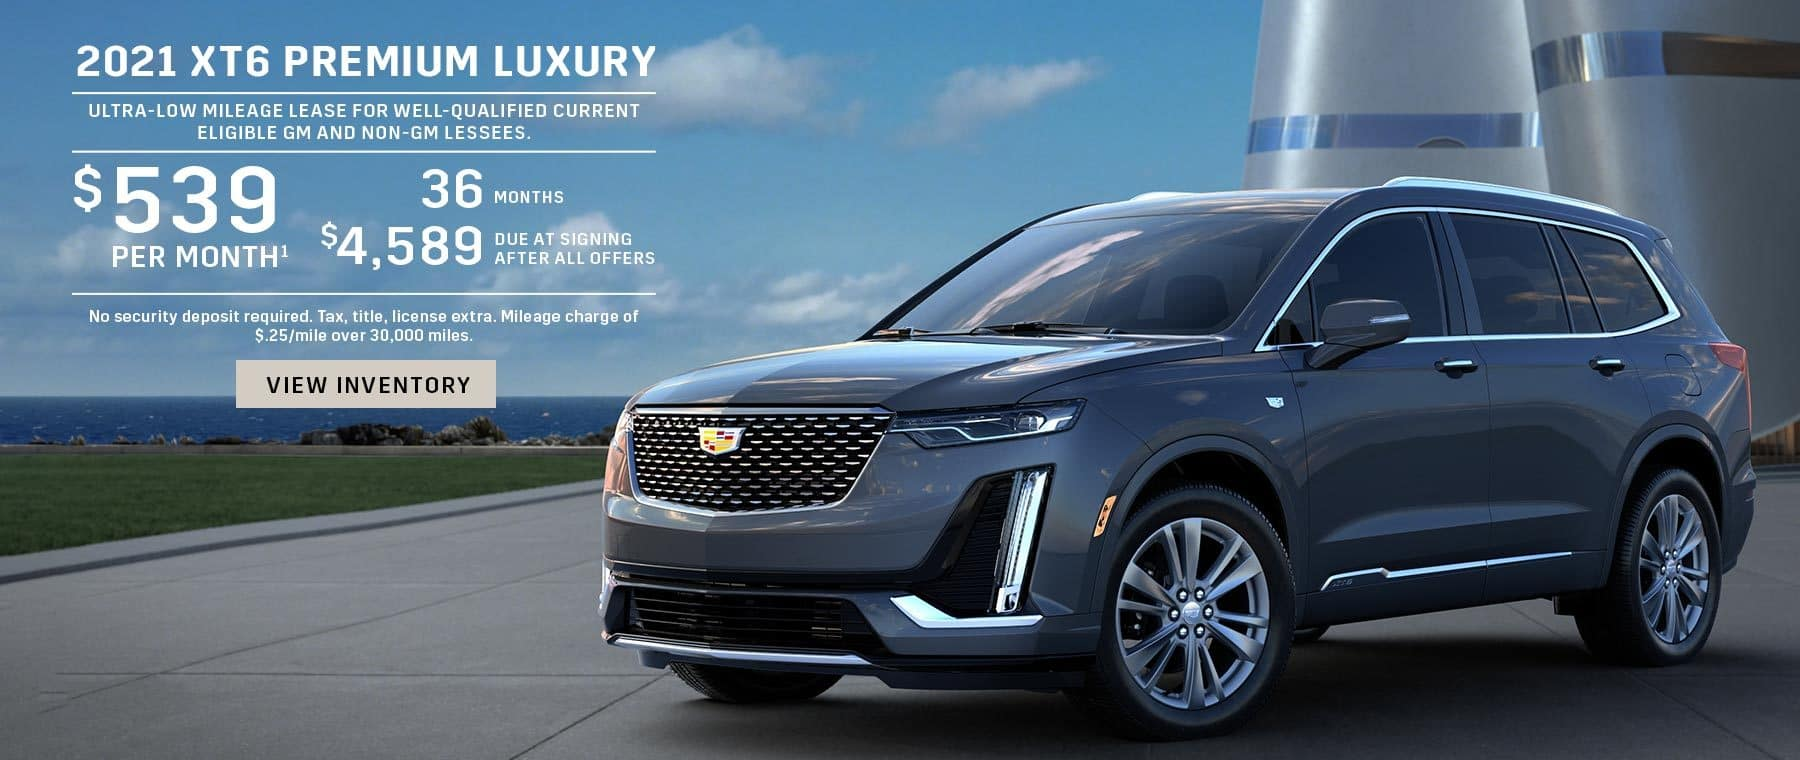 2021 XT6 Premium Luxury. Ultra-low mileage lease for well-qualified current eligible GM and non-GM lessees. $539 per month 36 months $4,589 due at signing after all offers. No security deposit required. Tax, title, license extra. Mileage charge of $.25/mile over 30,000 miles.